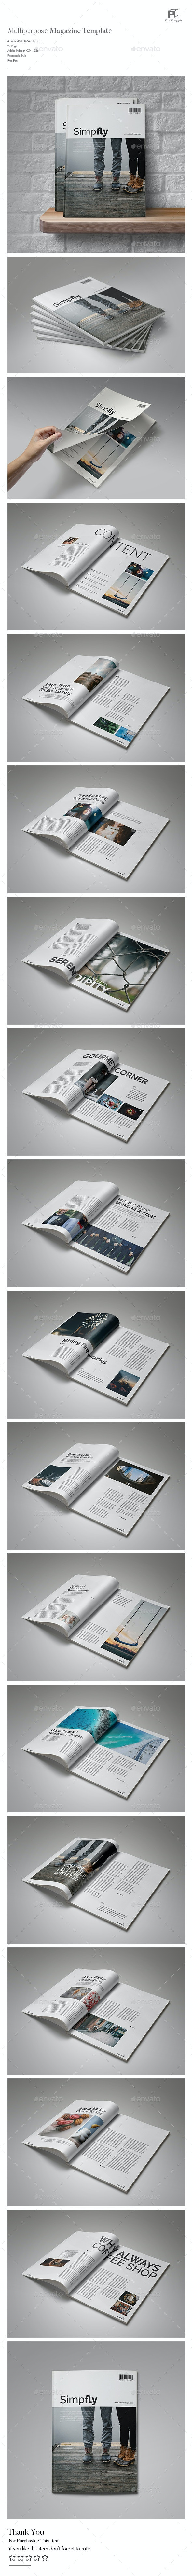 Clean & Simple Magazine Vol.5 - Magazines Print Templates